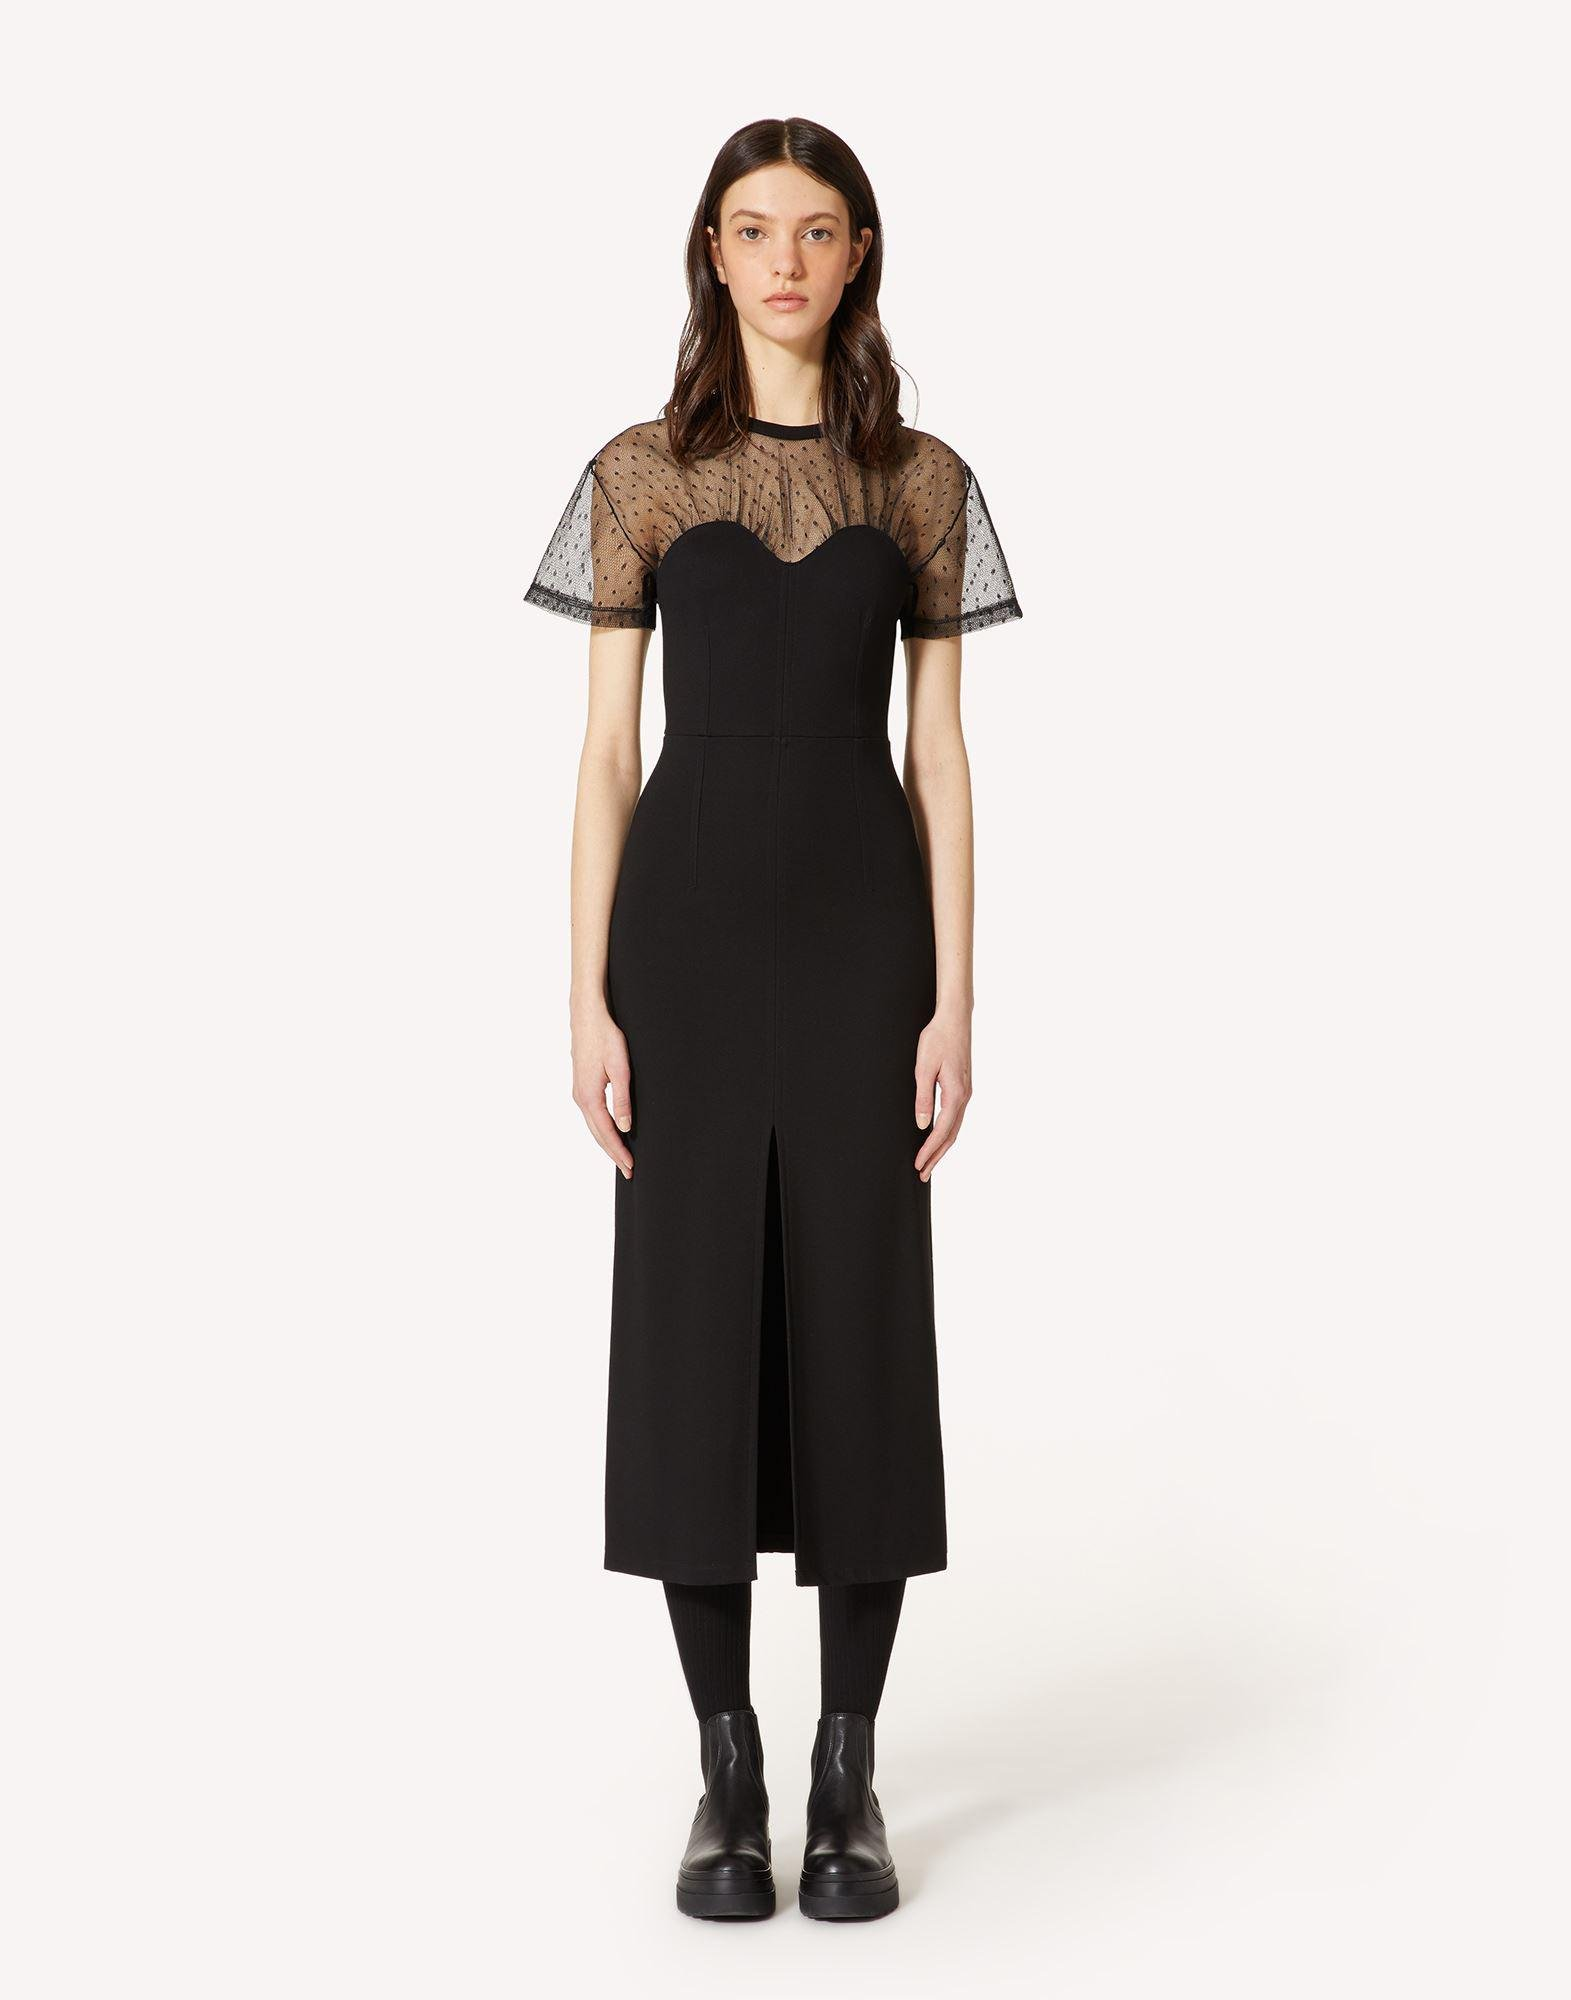 JERSEY AND POINT D'ESPRIT TULLE TUBE DRESS